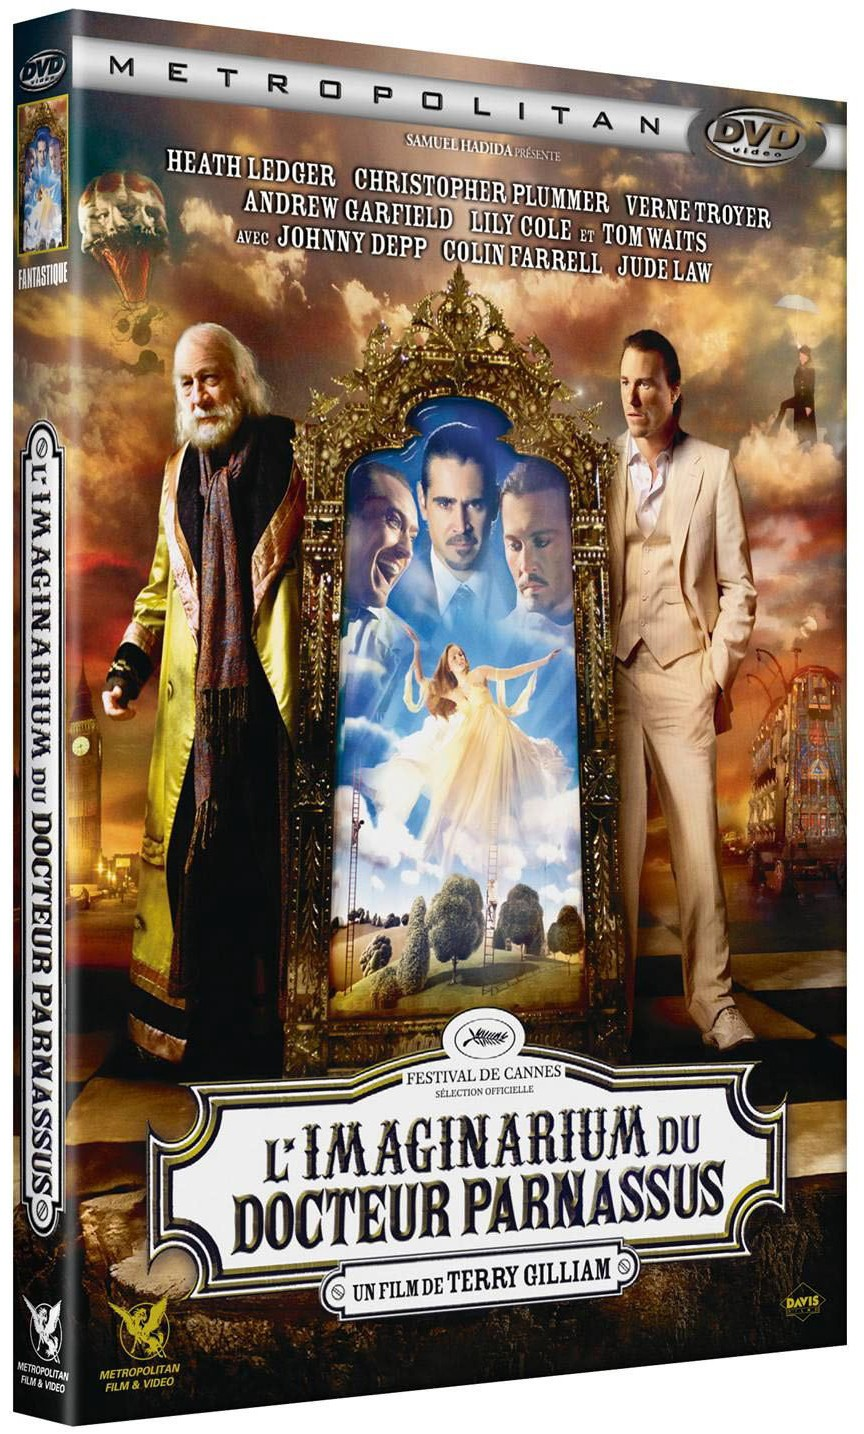 [MULTI] L'Imaginarium du Docteur Parnassus [DVDRiP] 2 CD